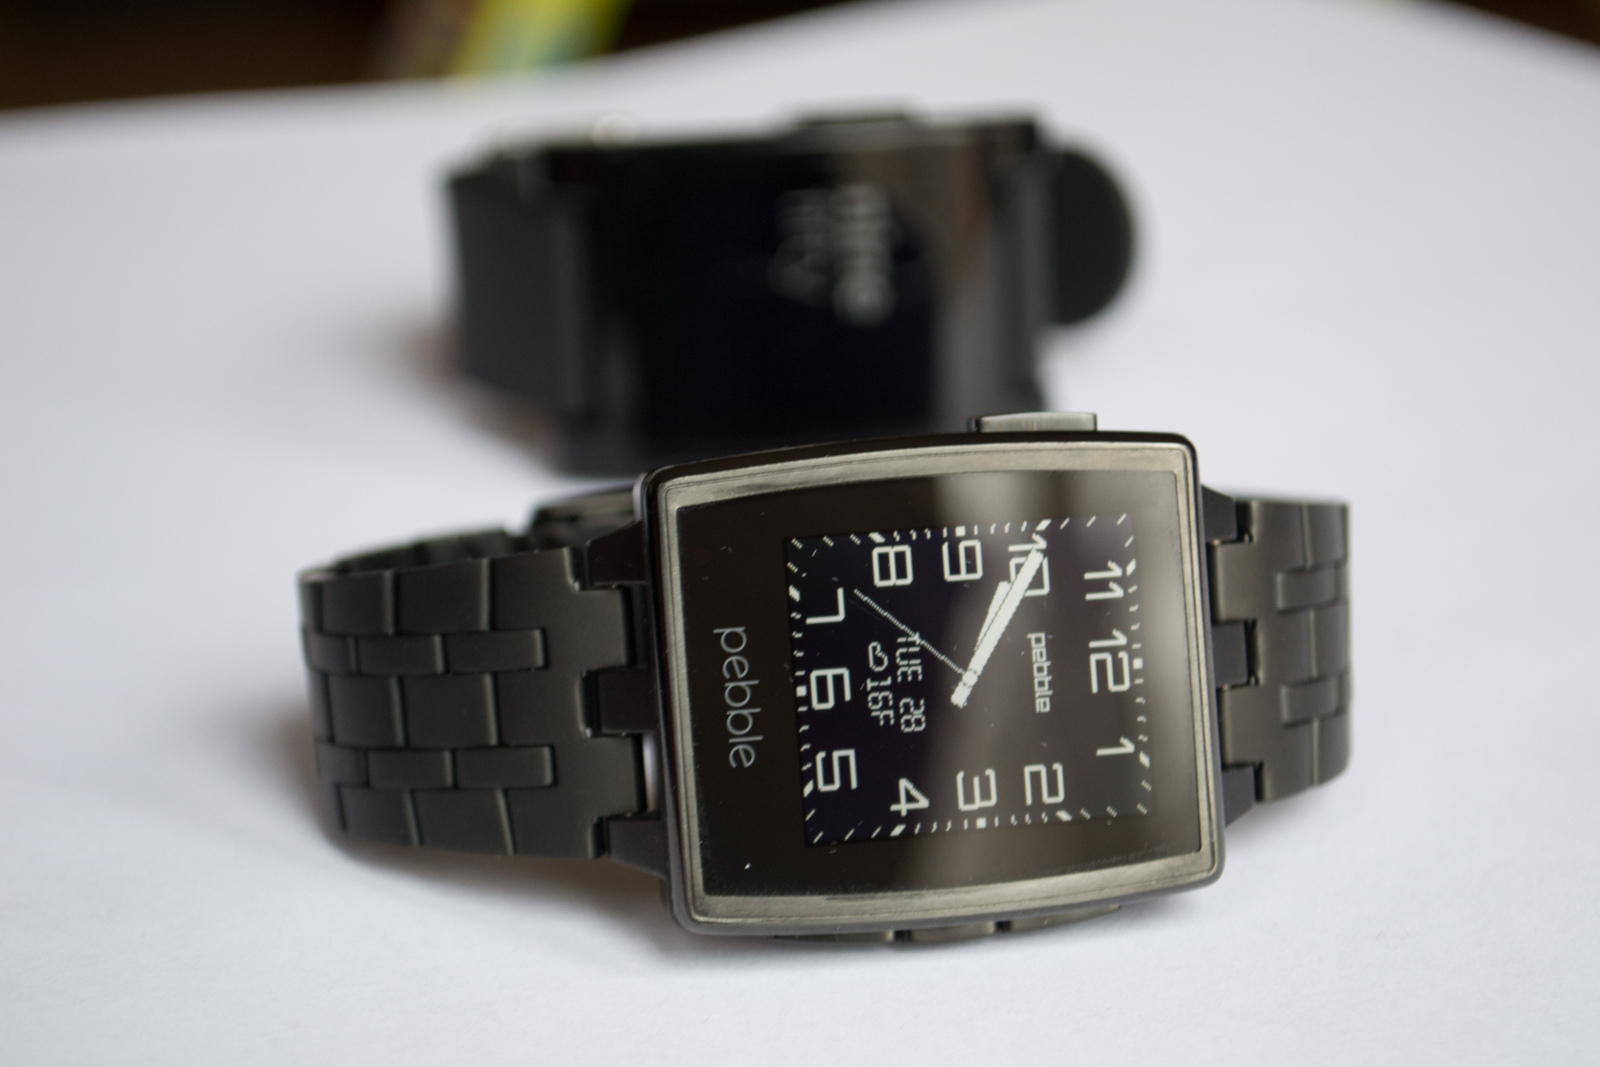 The Pebble Steel review: Wearables 2.0 arrive